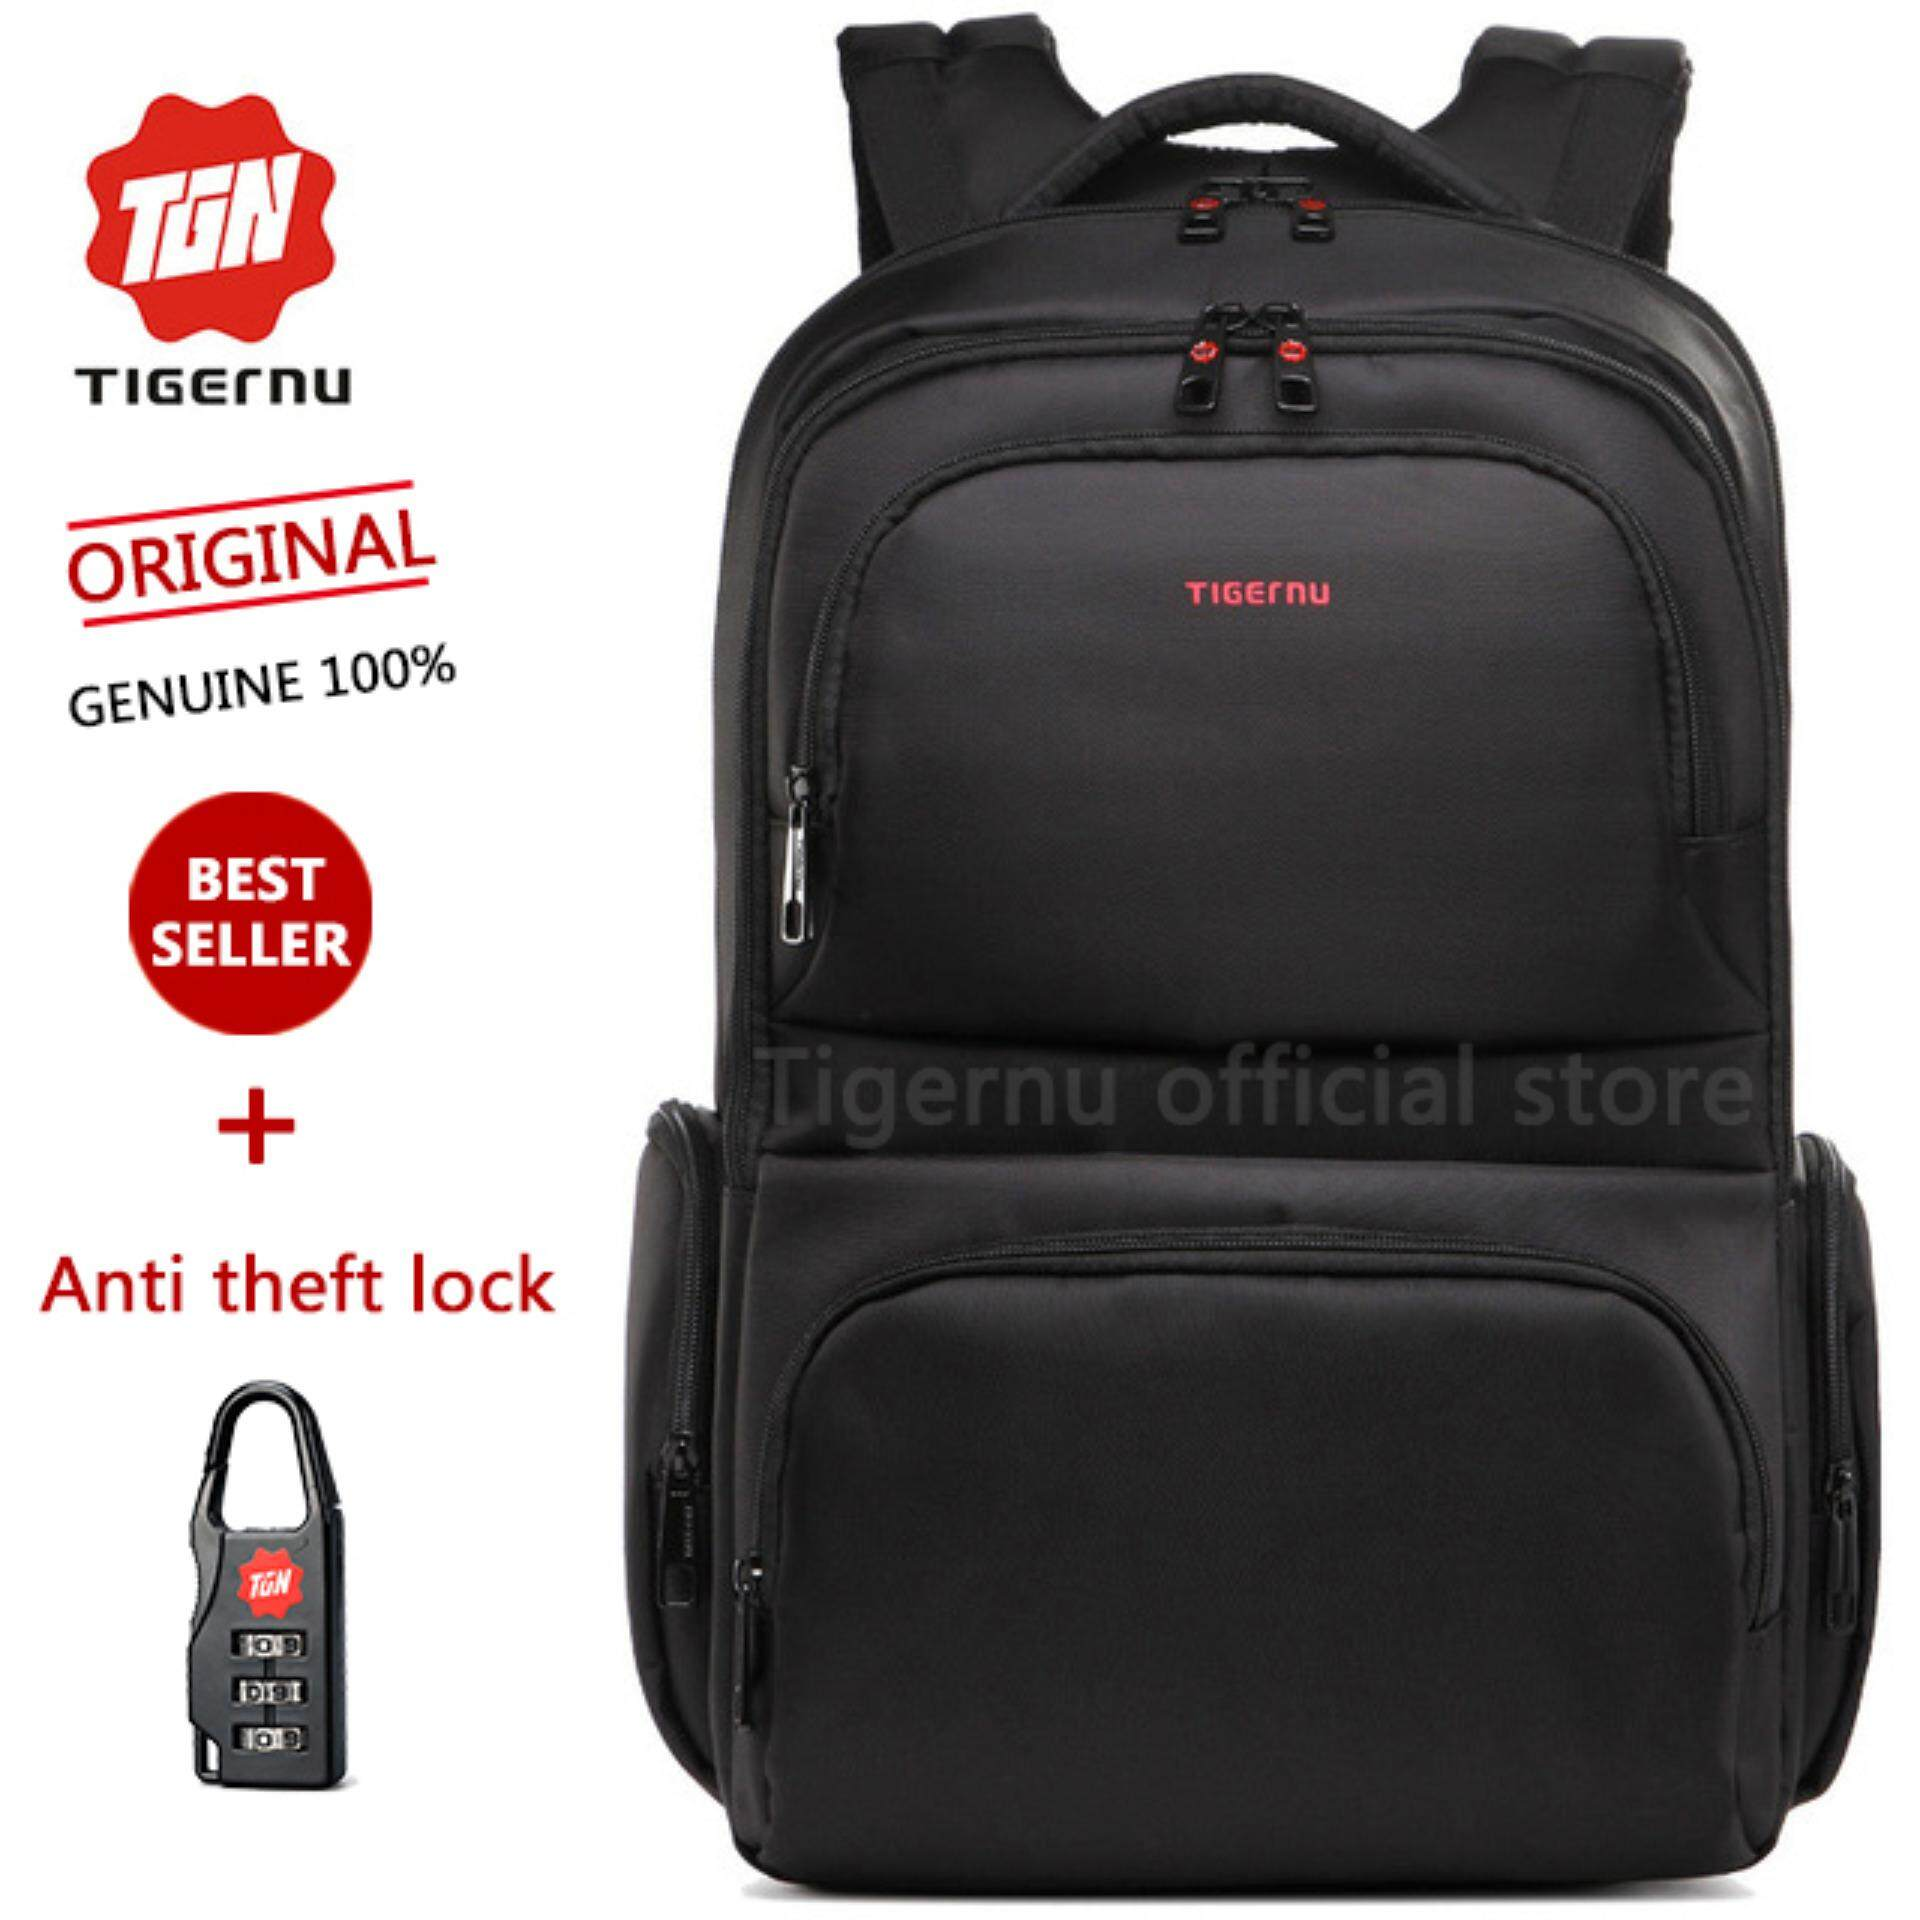 "Tigernu Waterproof Nylon Multi-functional Travel Business Casual Backpack for 12.1-15.6"" Laptop T-B3140(Black)"